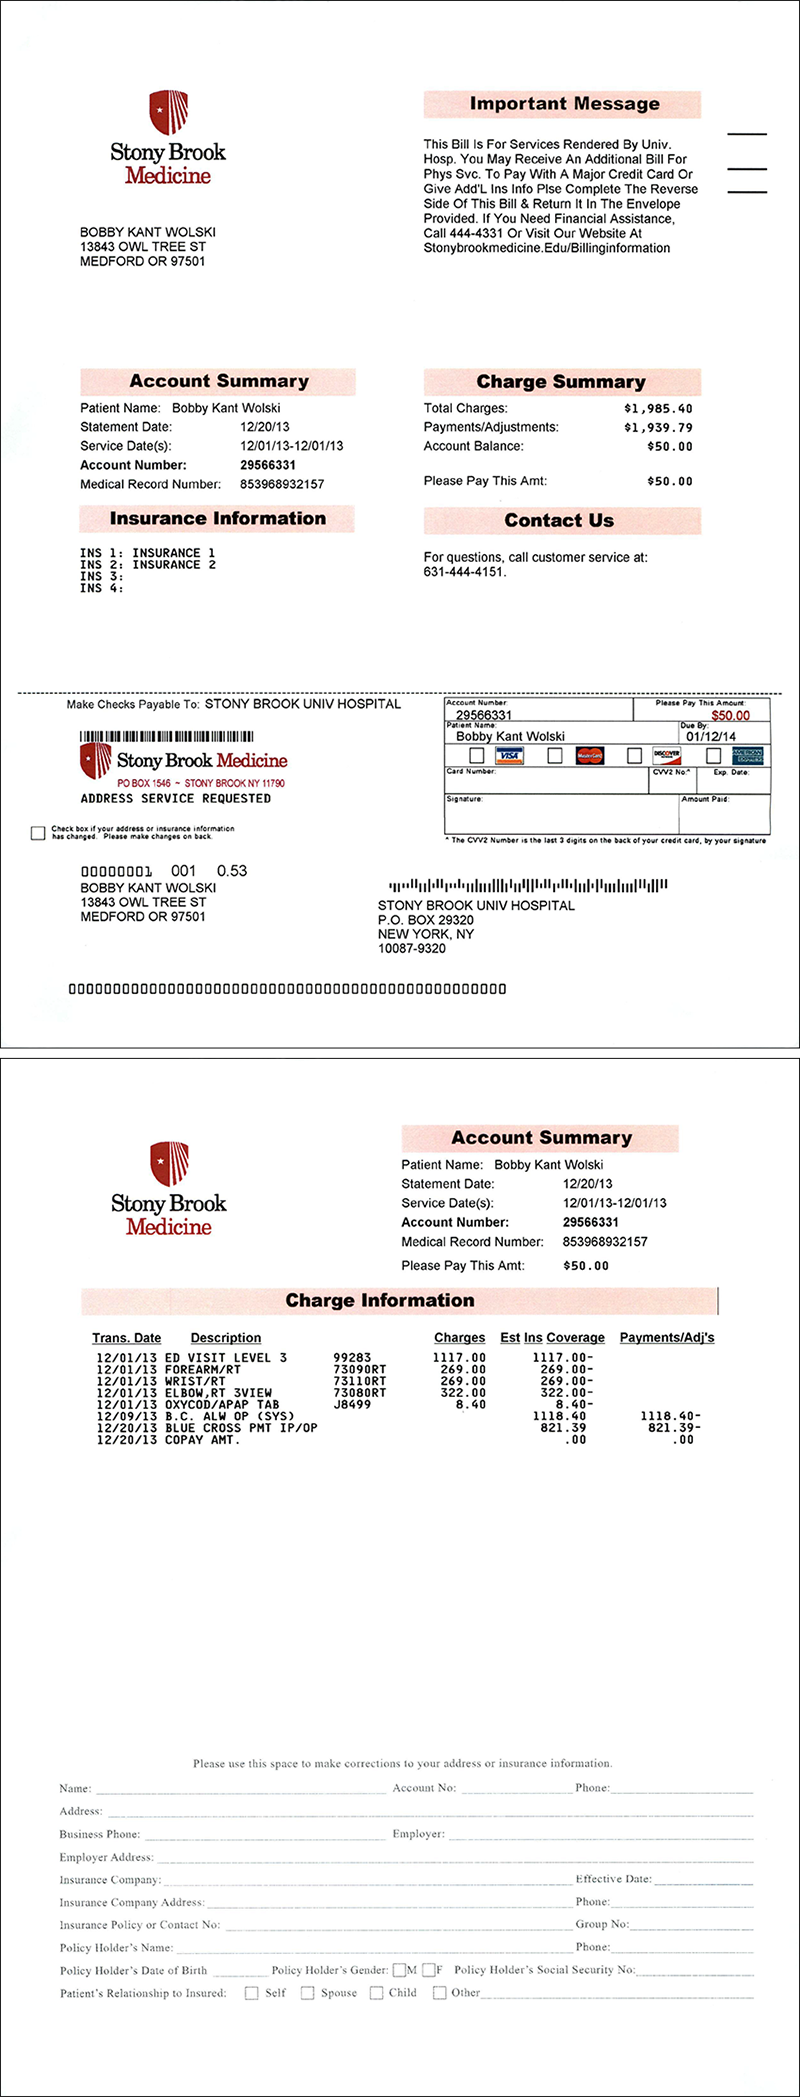 Hospital bill stony brook medicine if you have received one of these bills and have questions about it you can call 631 444 4151 during office hours monday friday 8 am 6 pm altavistaventures Gallery